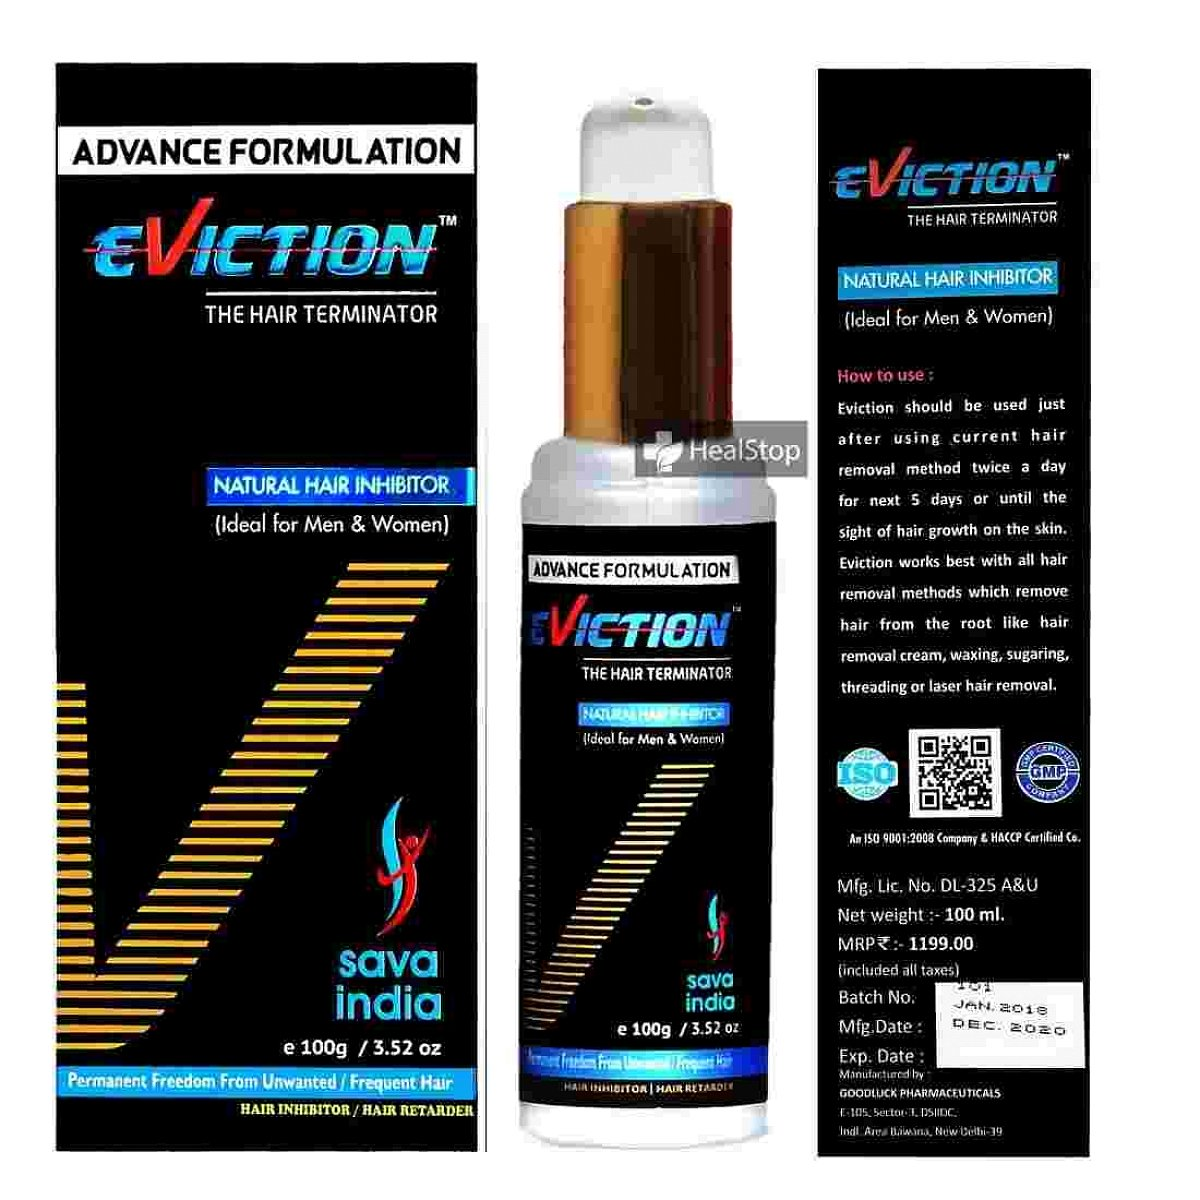 Eviction Natural Hair Inhibitor